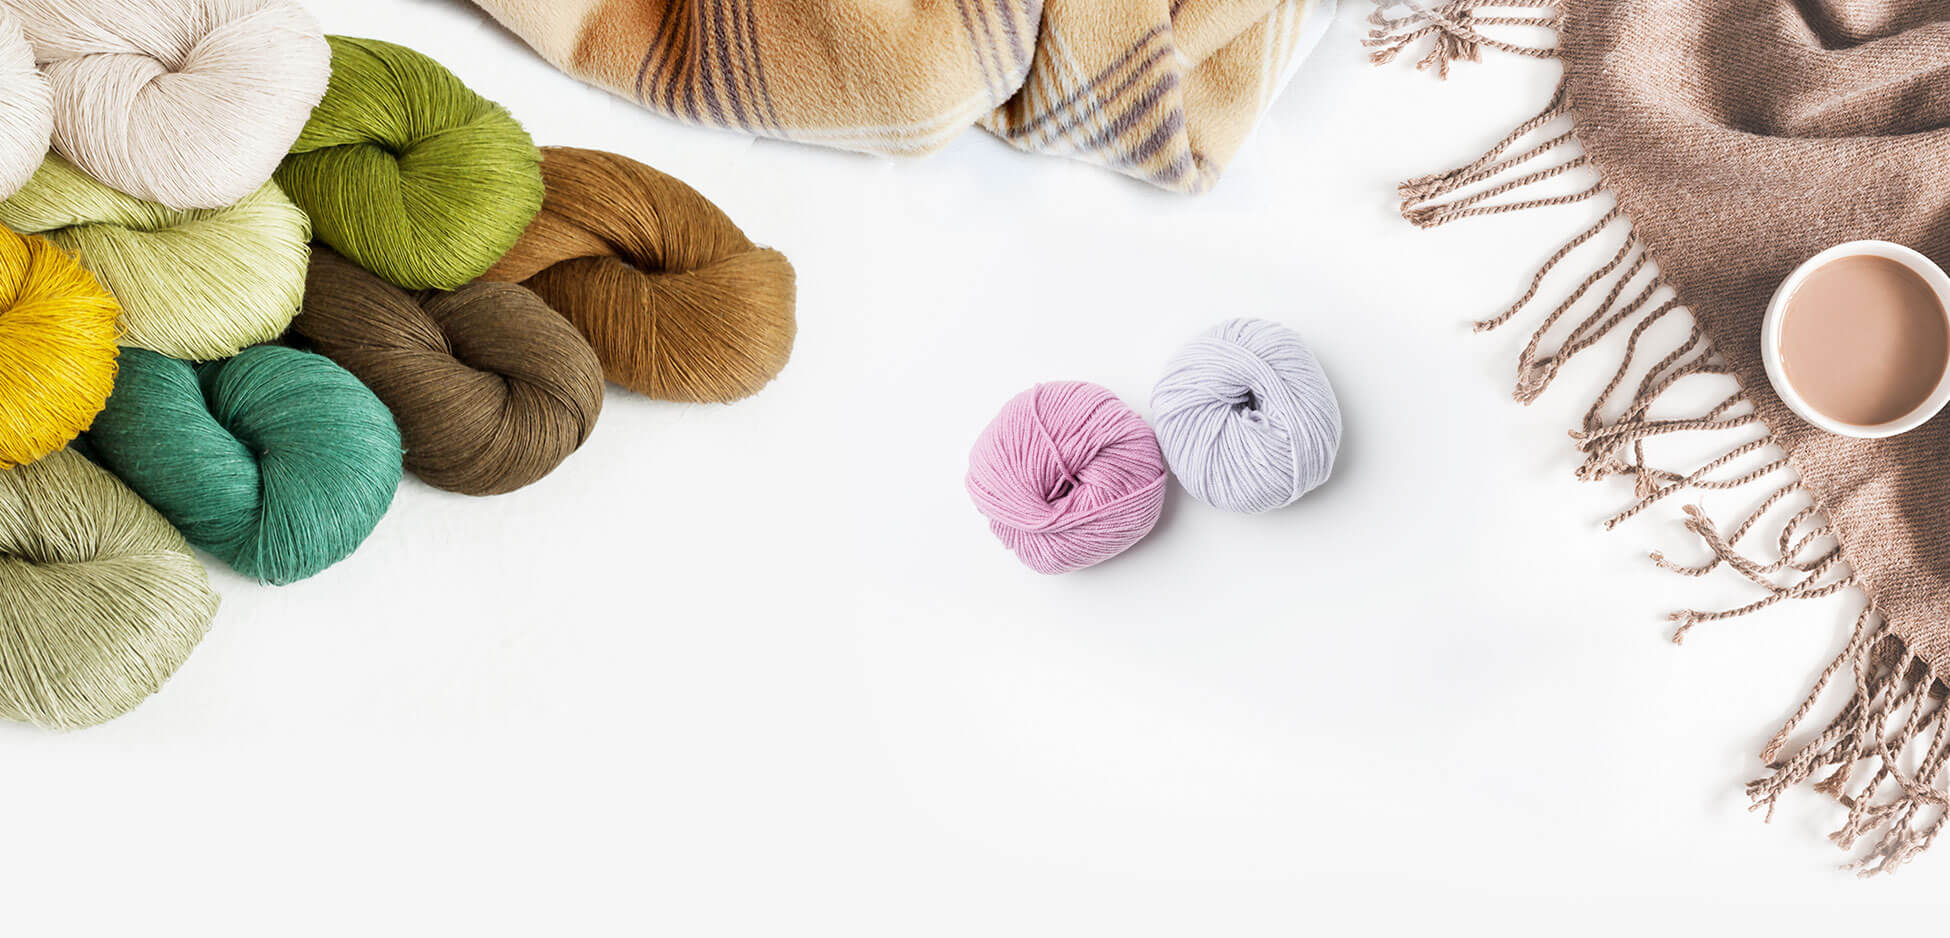 Yarn Manufacturers in India  Recycled yarn manufacturer sustainable textile supplier Mink blanket recycled cashmere  acrylic yarn online india acrylic yarns